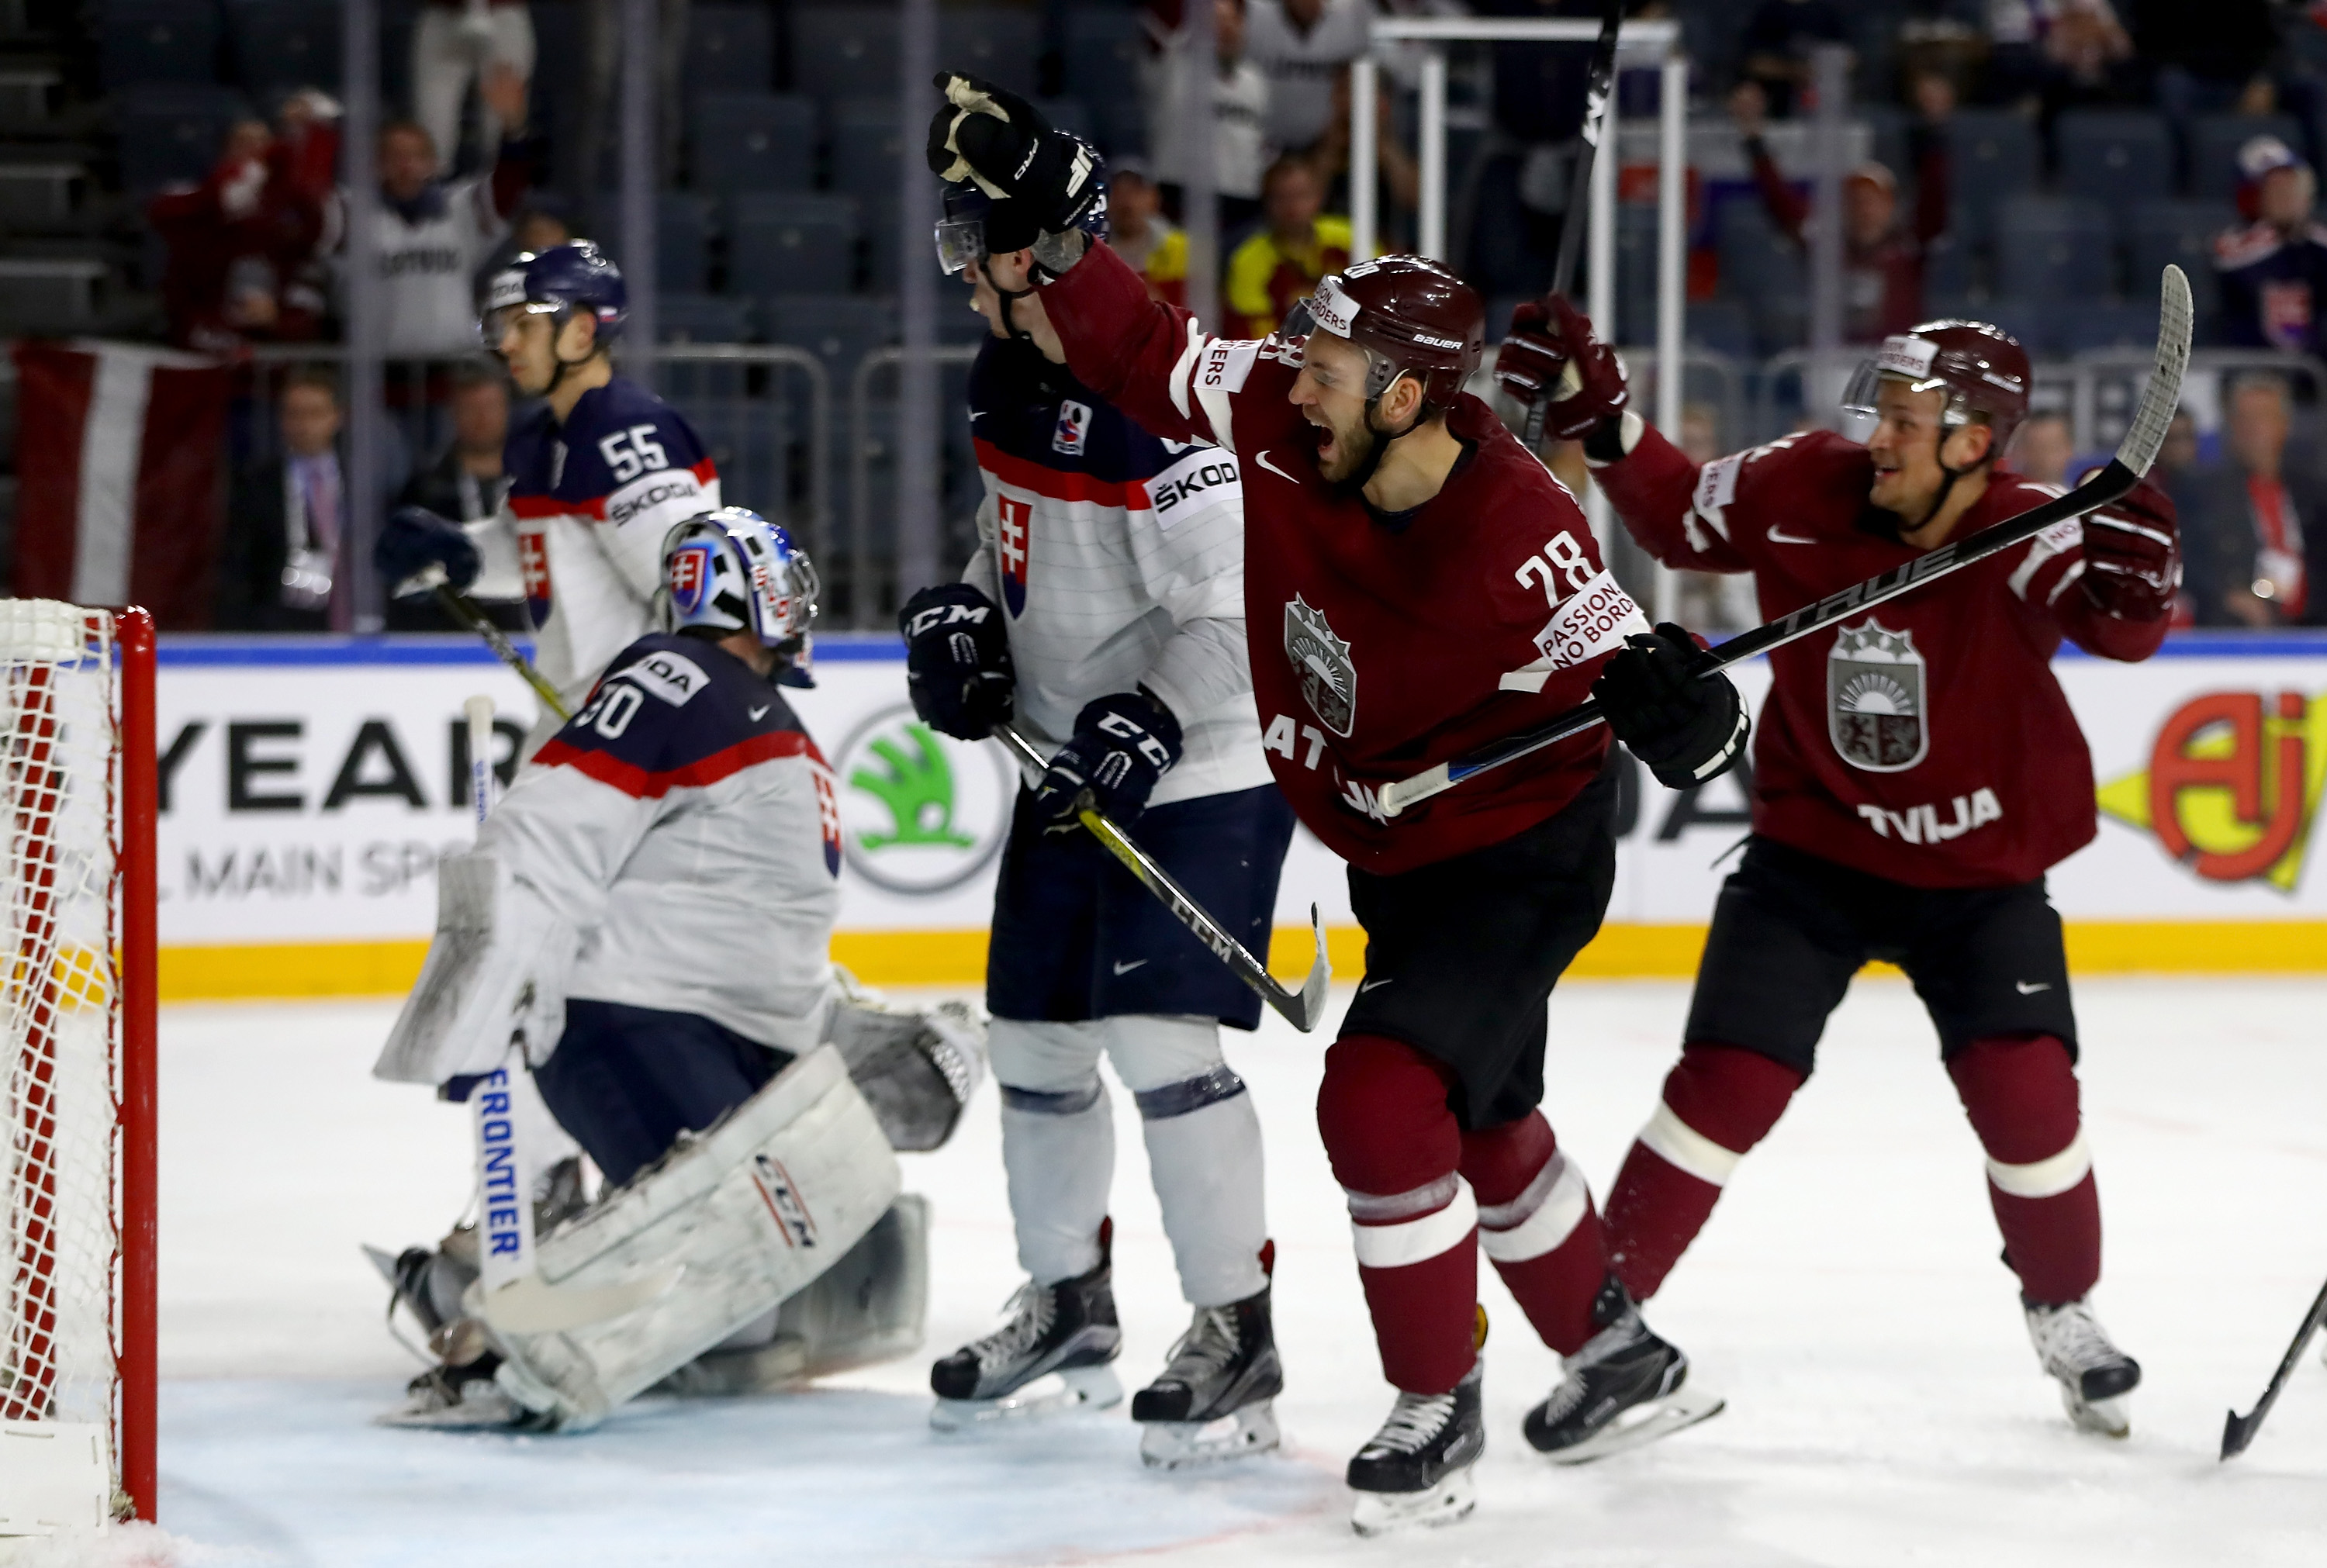 Zemgus Girgensons (28) and Latvia will face Jack Eichel and the United States on Saturday. (Getty Images)